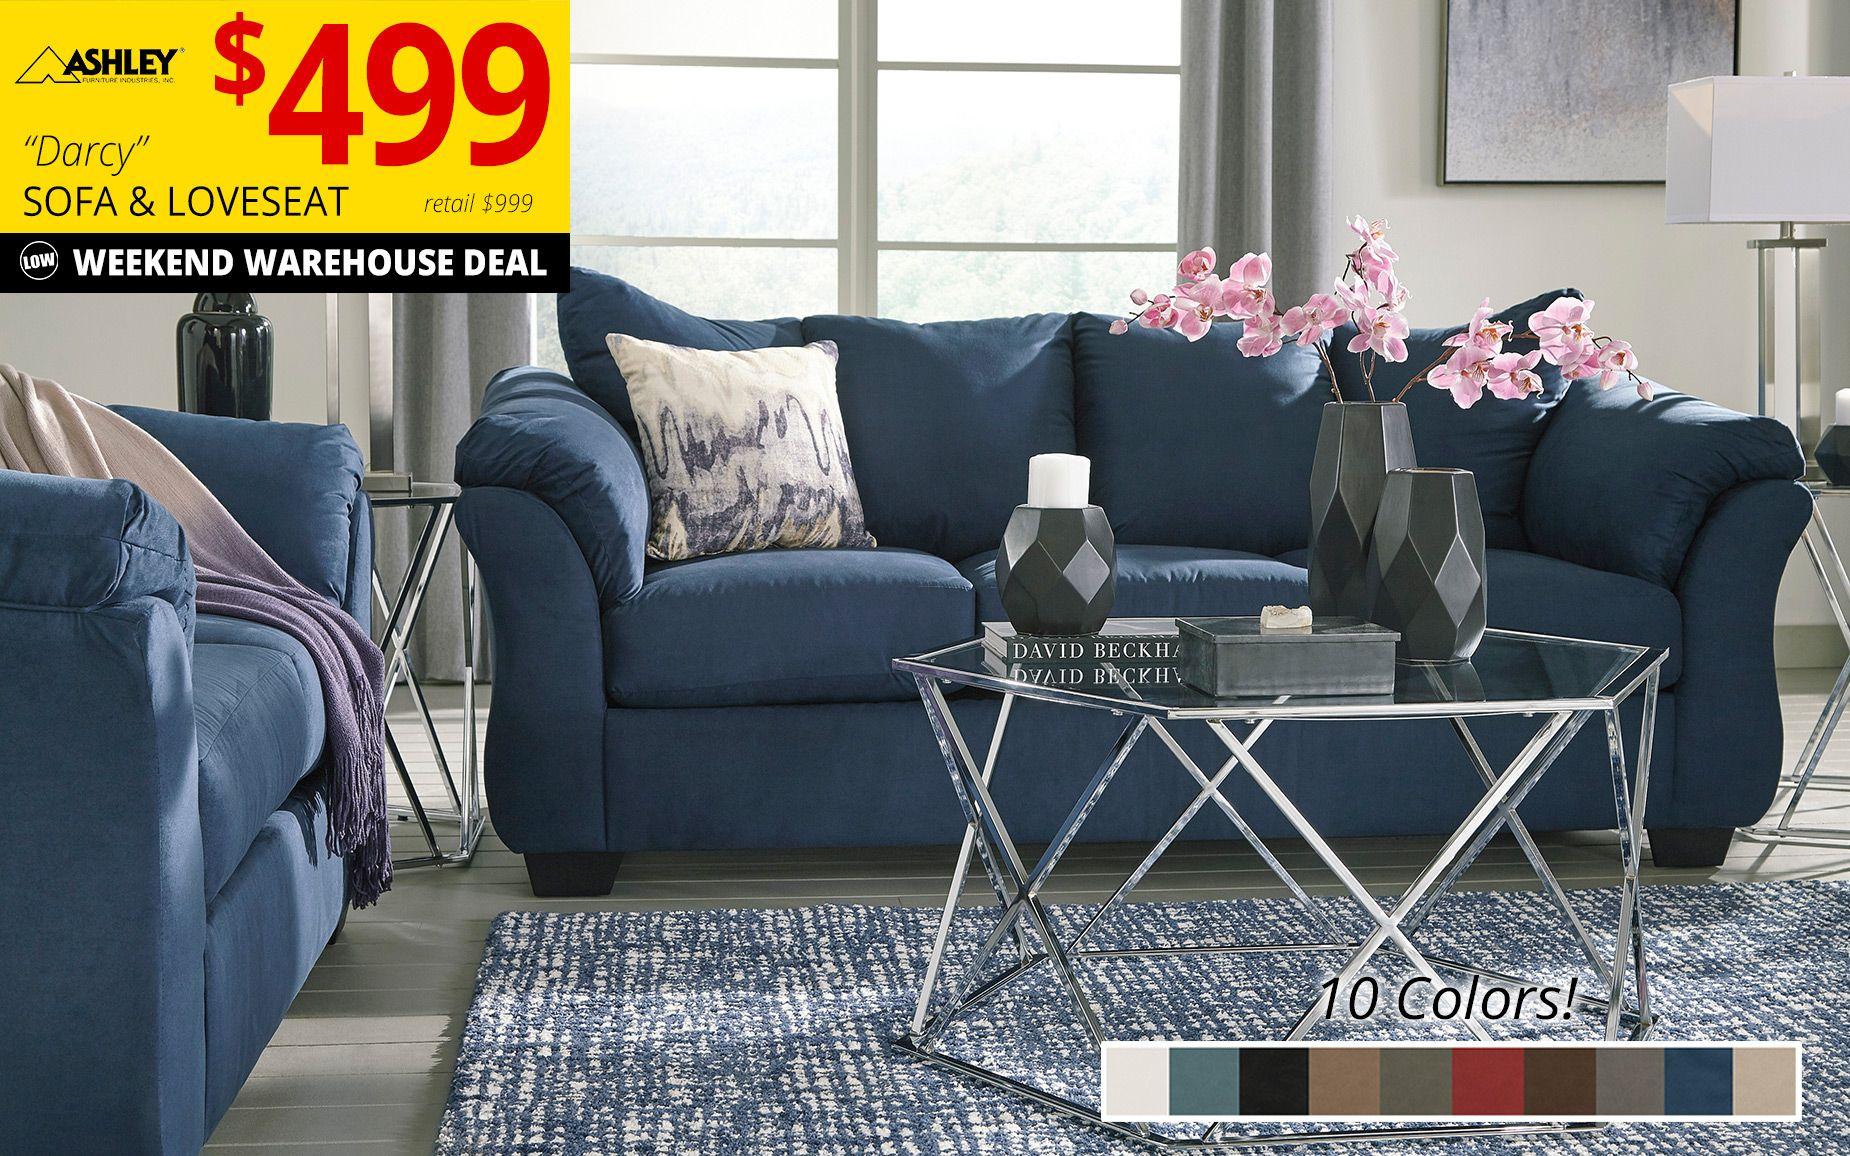 Louisville Overstock Warehouse Furniture And Mattress Store Furniture Furniture Warehouse Mattress Store